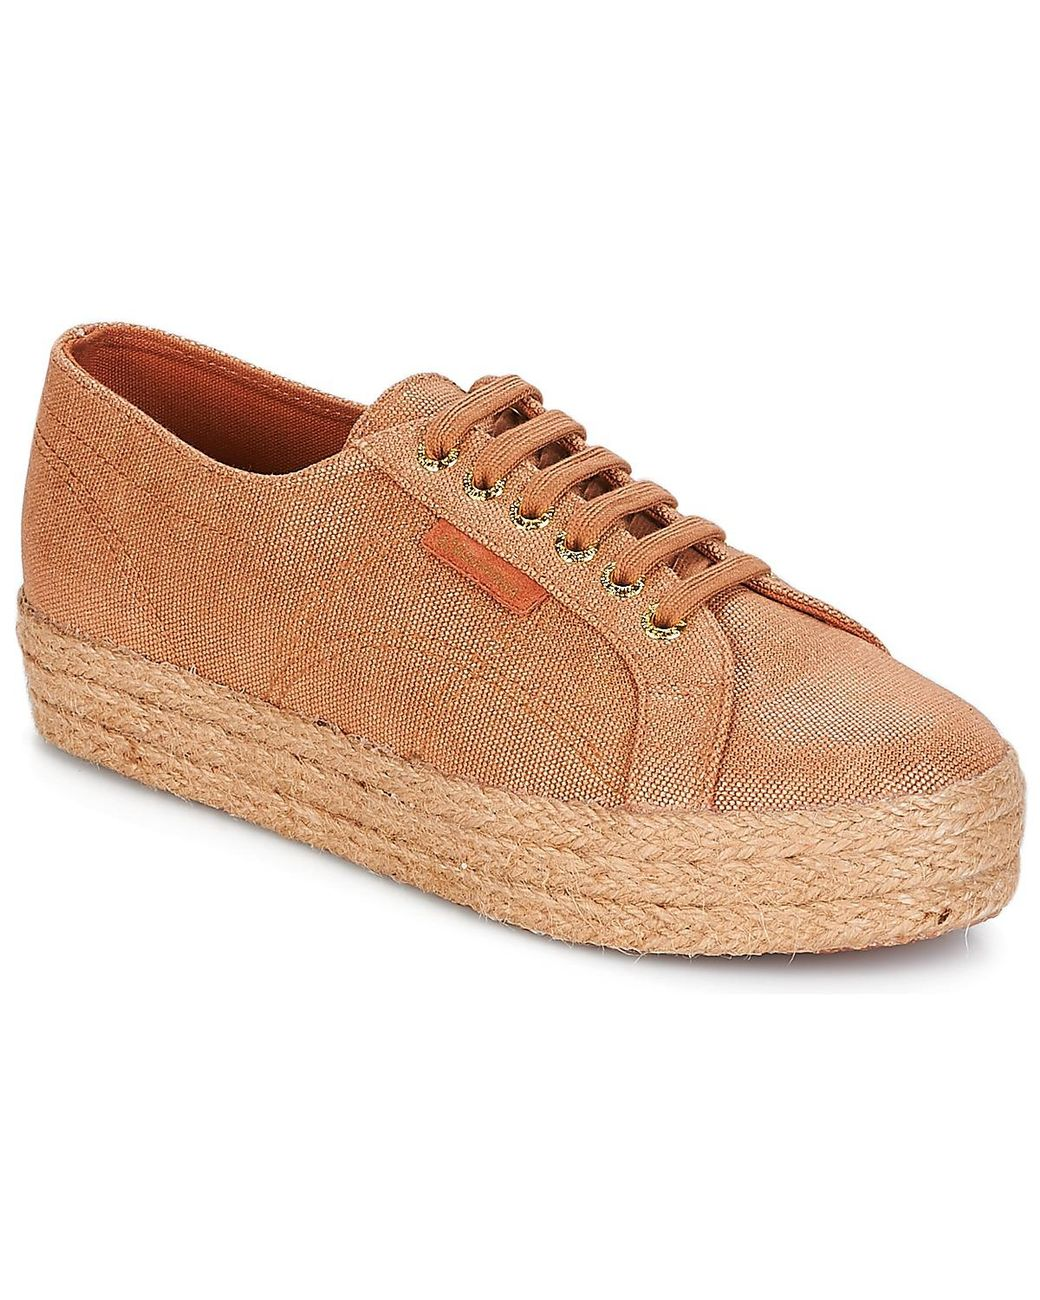 Superga Save 18Lyst W 2730 Lame Orange ShoestrainersIn Degrade Yf7byg6